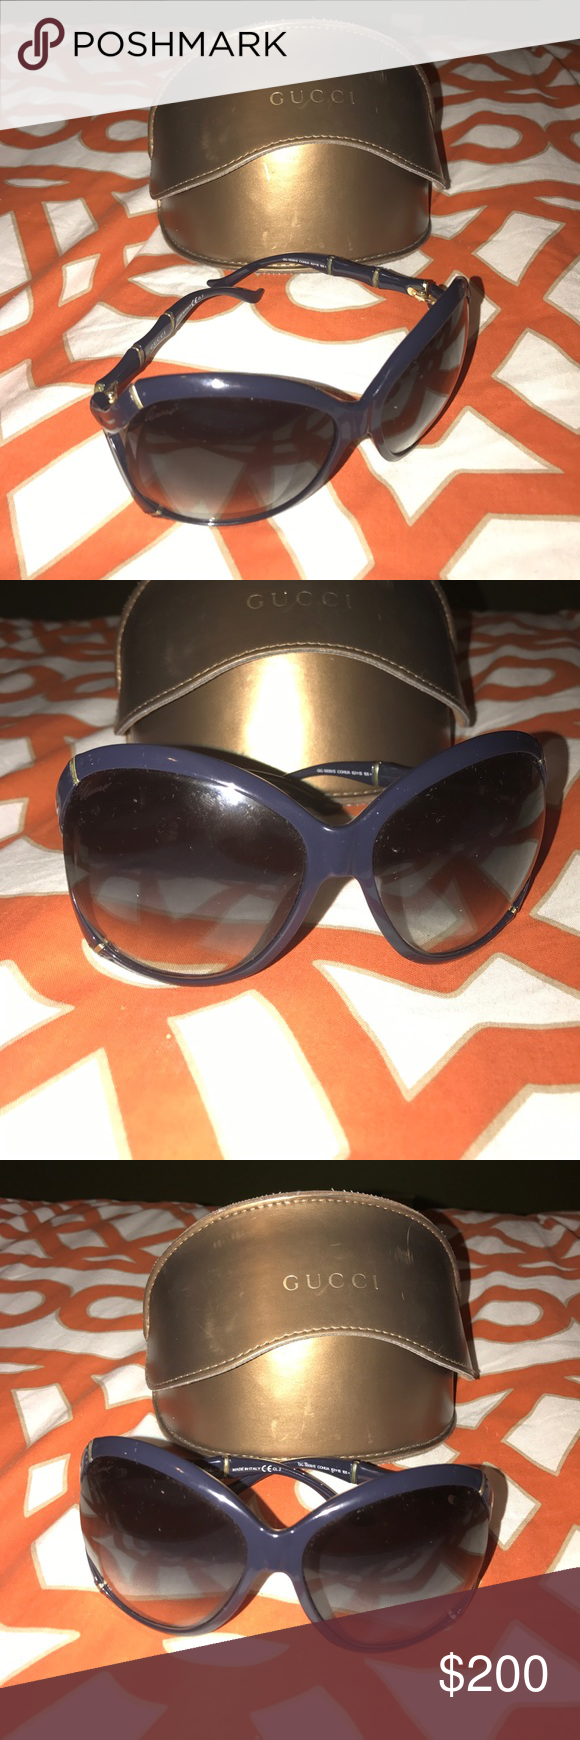 4e08a9cdeb0 Gucci Bamboo Shades Beautiful sleek and stylish Gucci Bamboo shades! Navy  Blue and Gold! Excellent Condition. Case included Gucci Accessories  Sunglasses